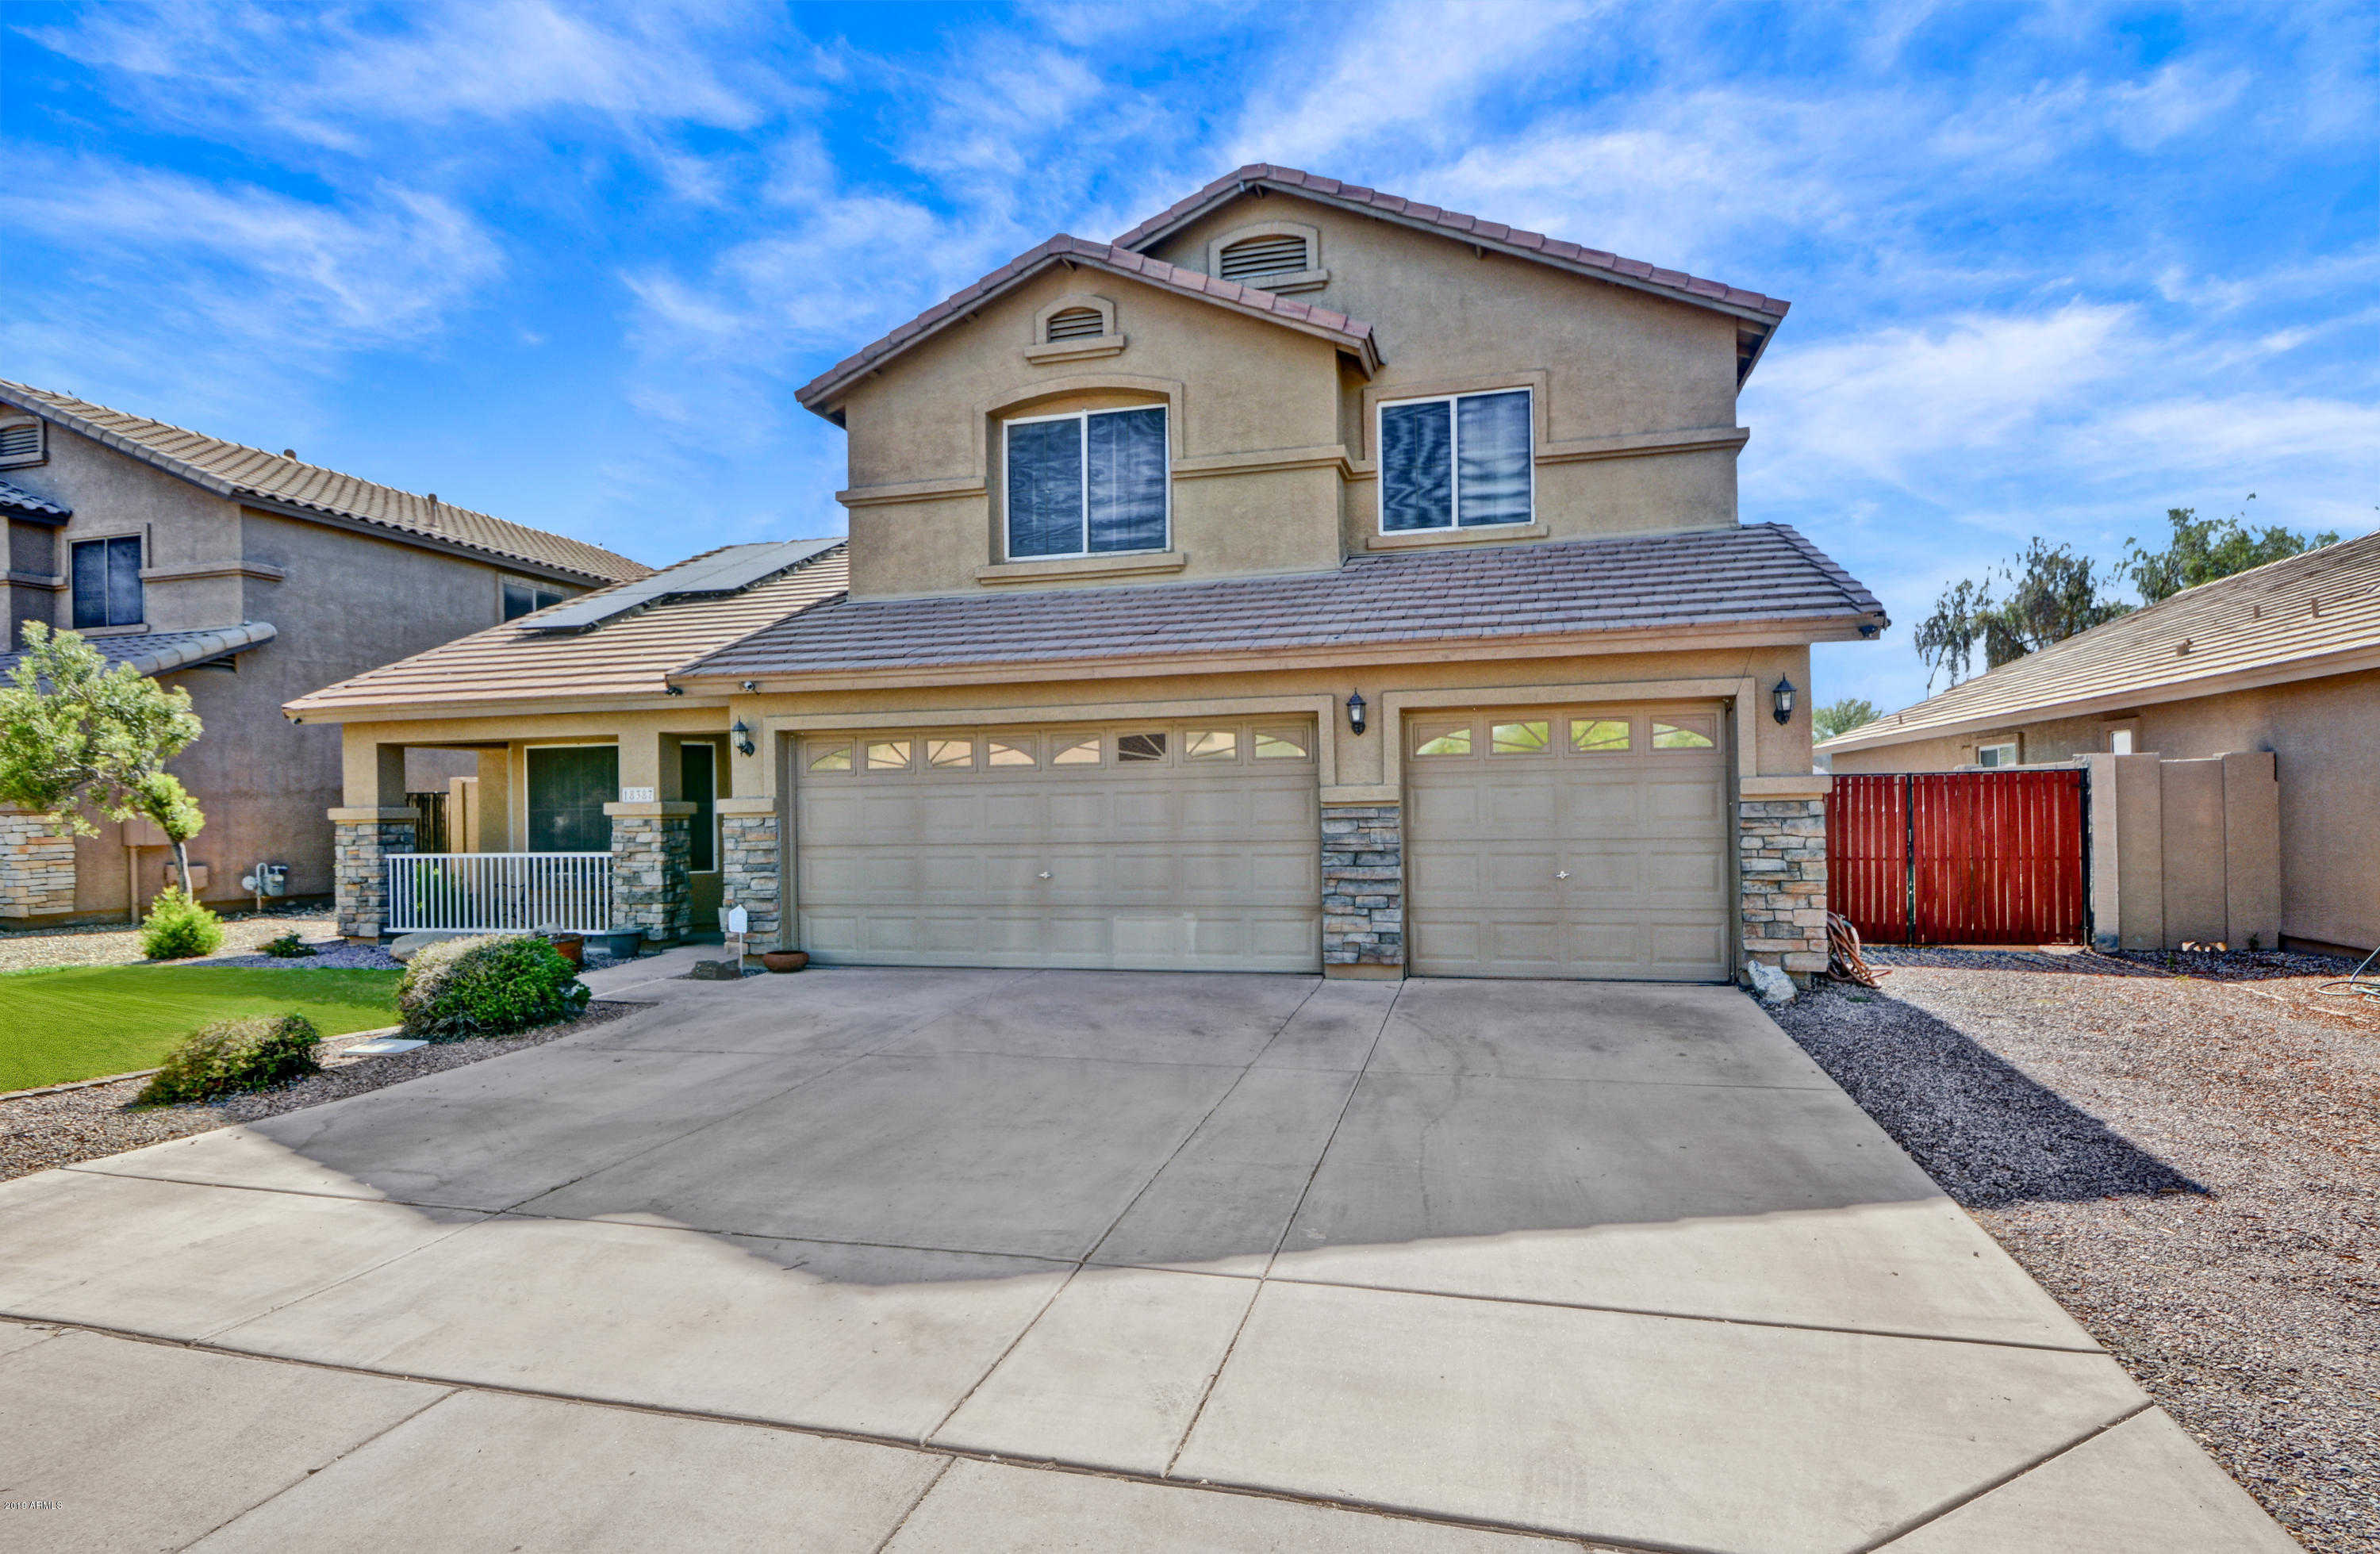 $399,000 - 5Br/3Ba - Home for Sale in Acacia Cove, Glendale